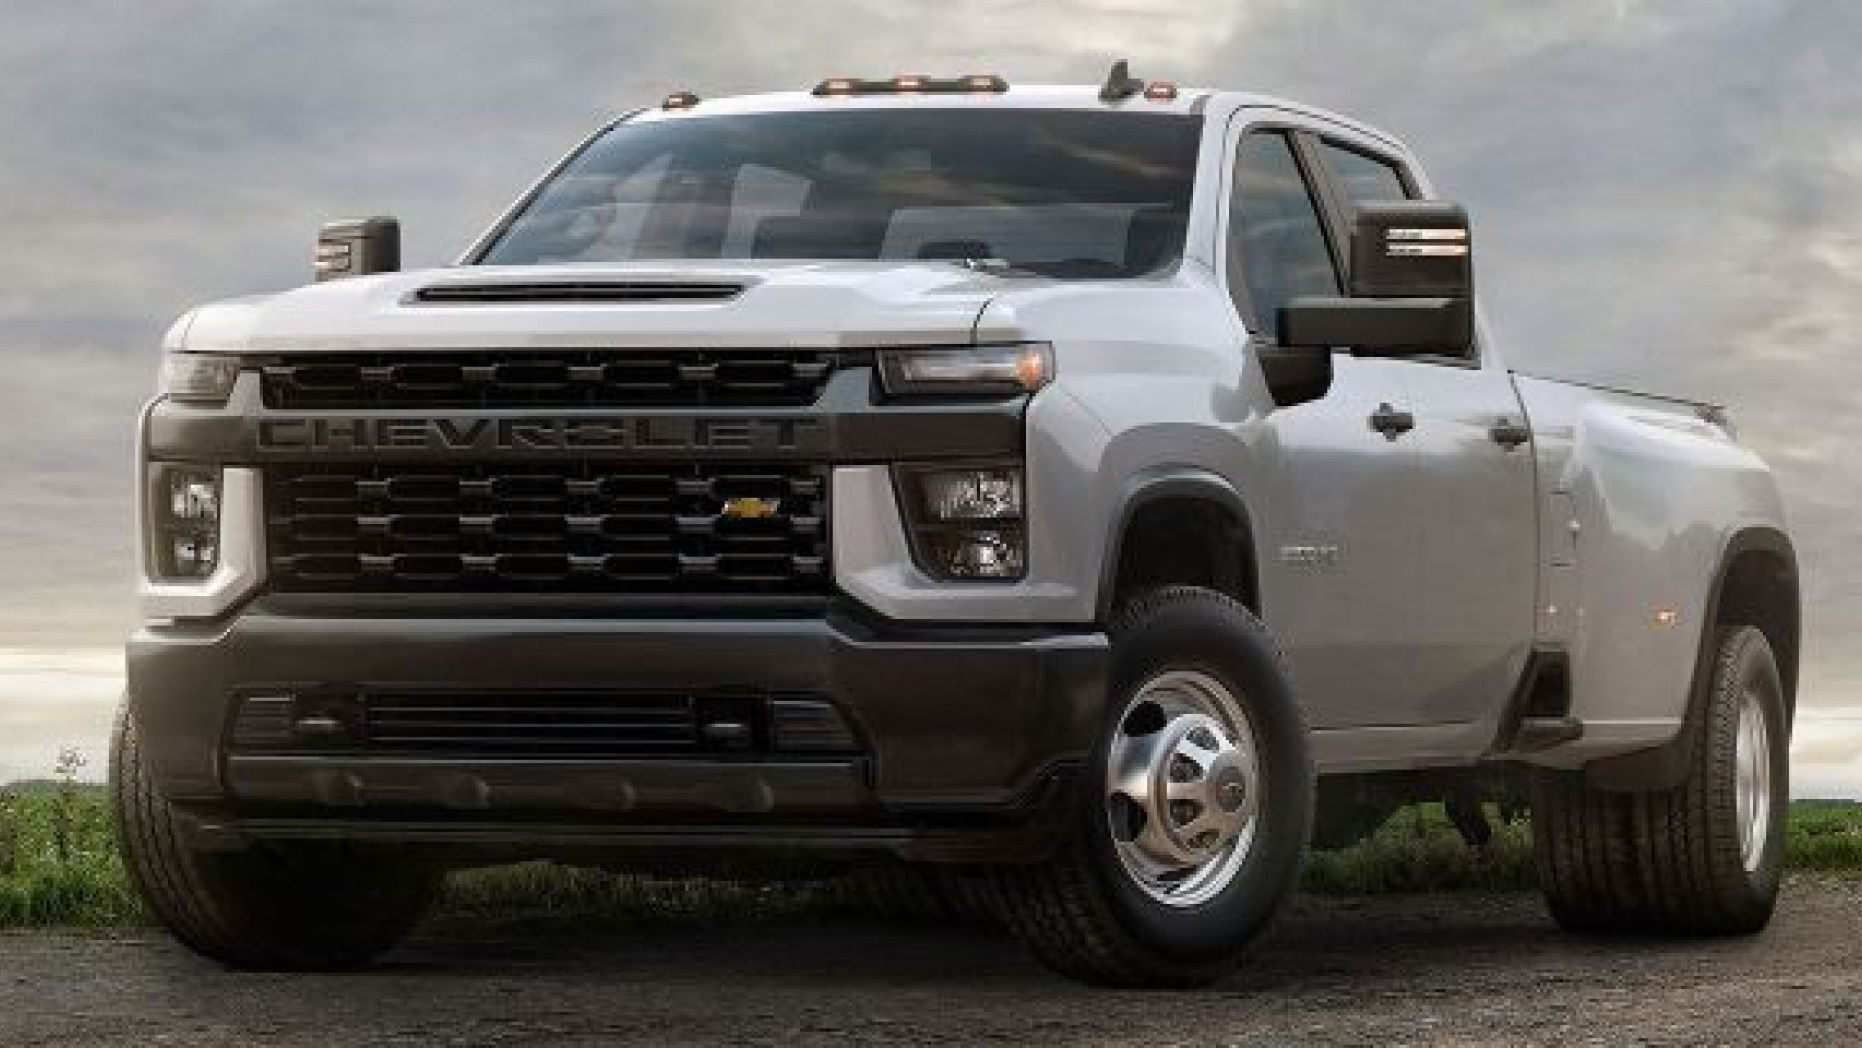 57 All New 2020 Chevy Silverado Hd Style